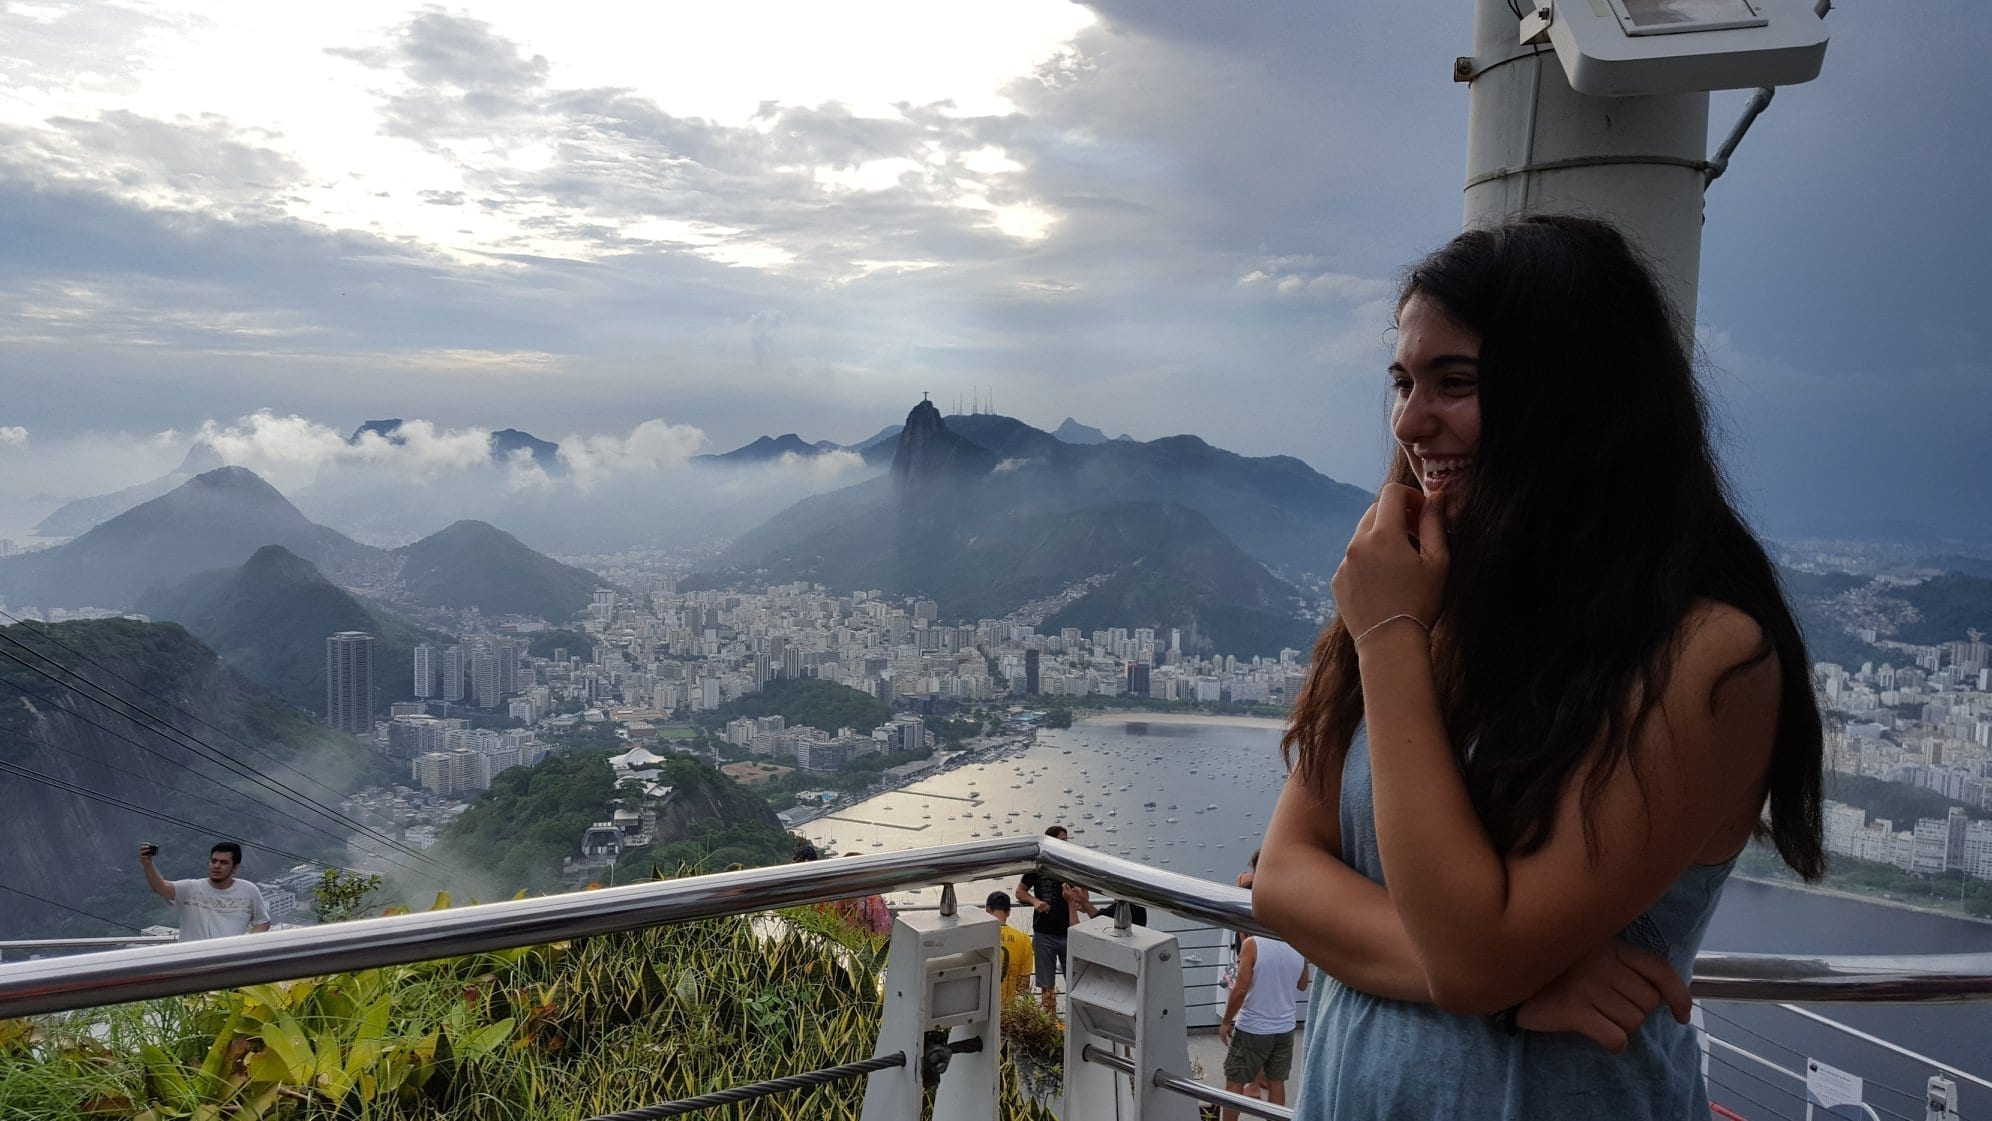 This view makes anyone smile! Dutch student at the top of Sugarloaf mountain.